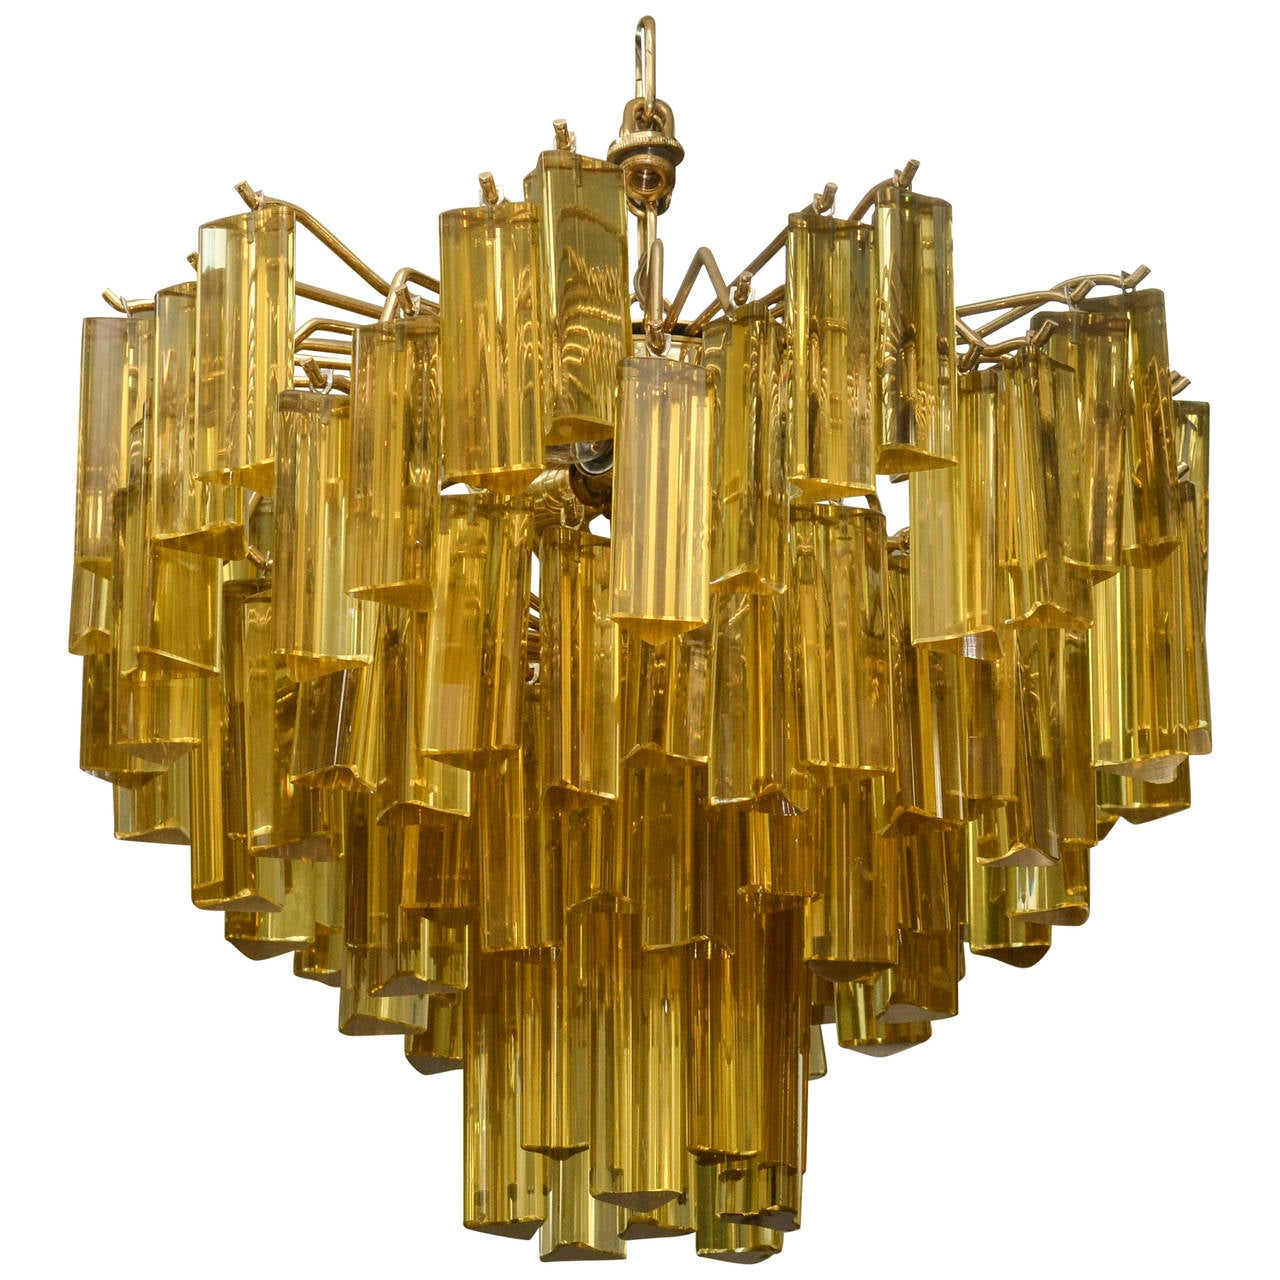 Murano amber glass chandelier for sale at 1stdibs murano amber glass chandelier for sale aloadofball Images